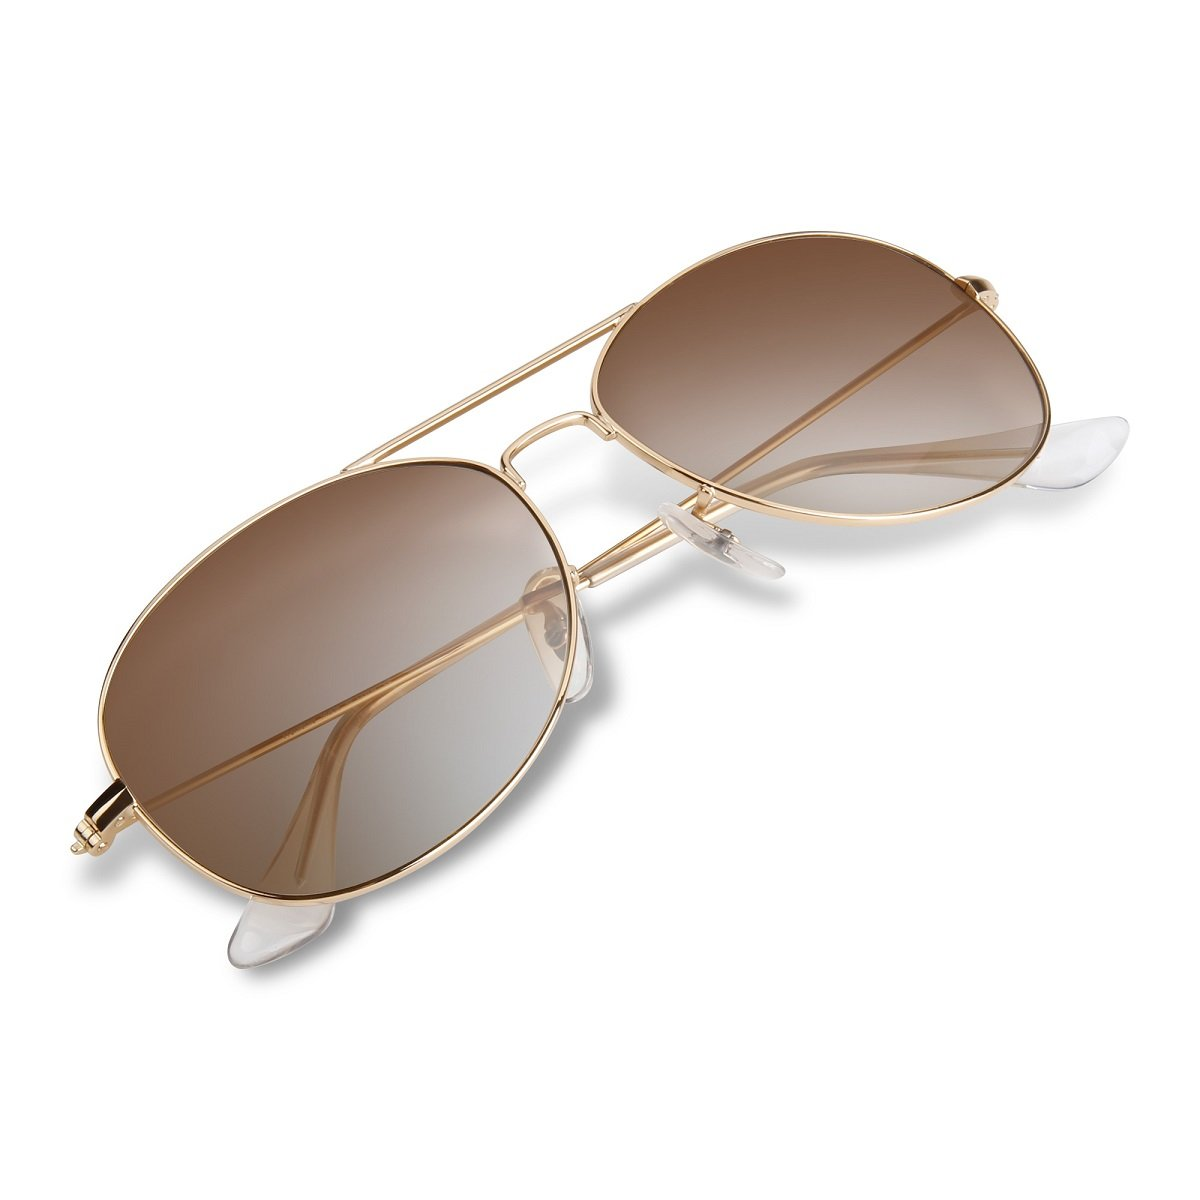 Aviator Sunglasses for Small Face, Wenlenie Unisex Sunglasses for Men Women Gold Metal Frame/Gradient Brown Lens- Small